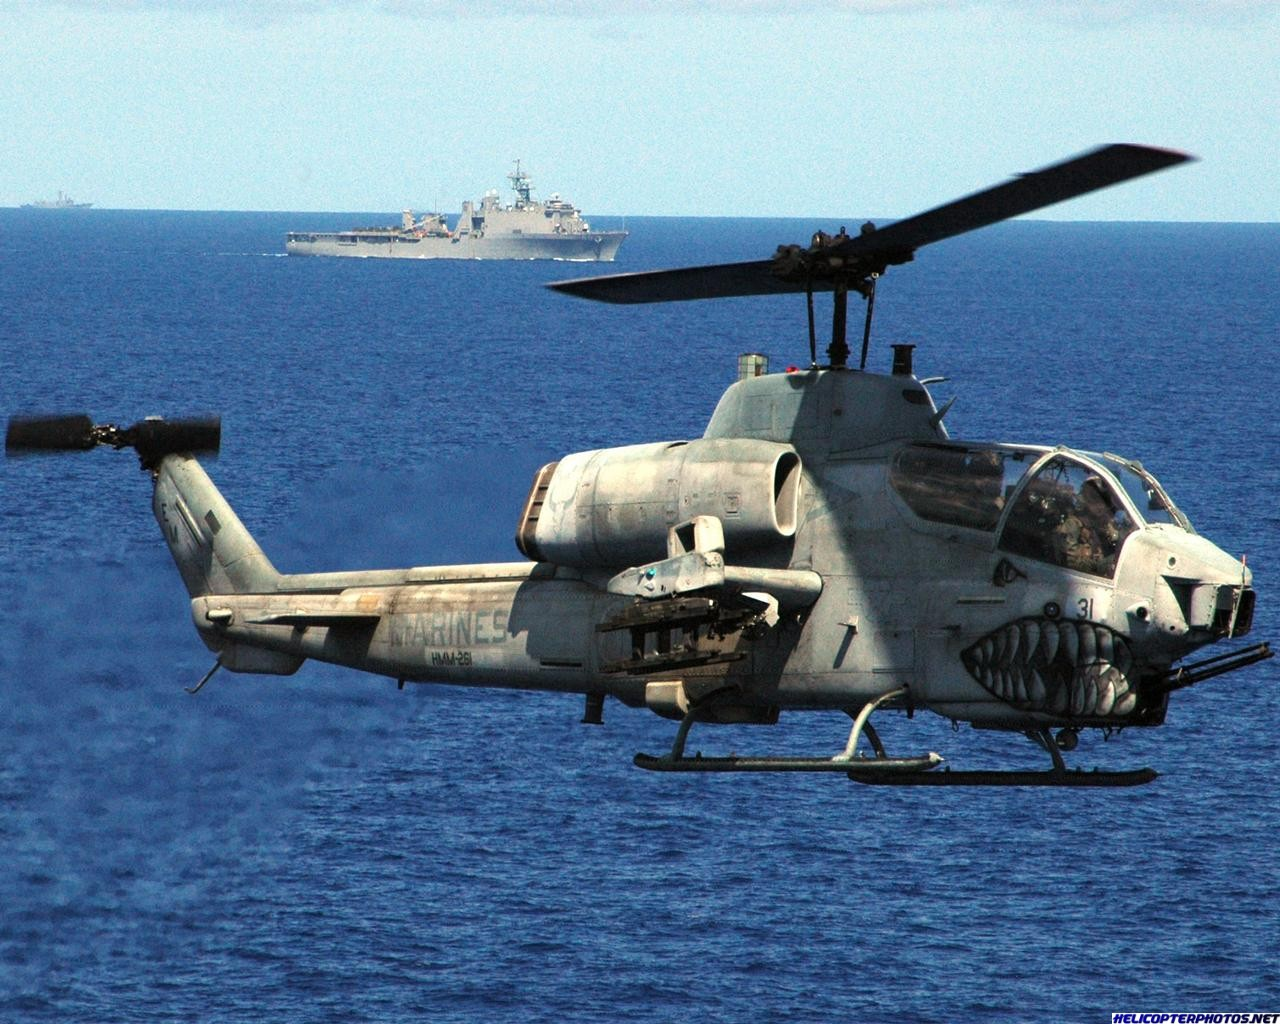 AH-1W_Super_Cobra_attack_helicopter.jpg